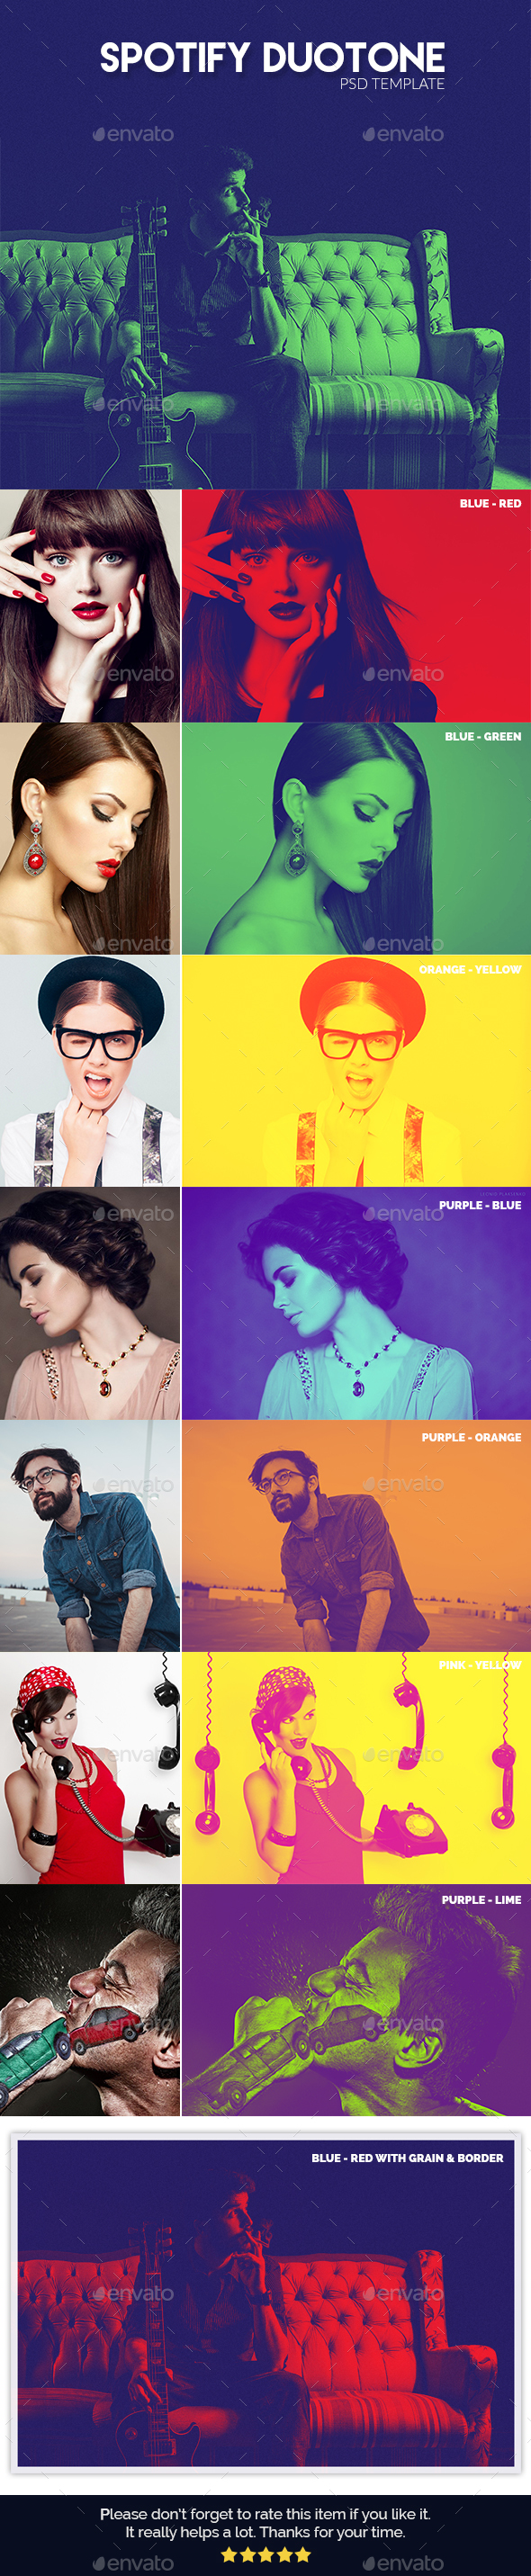 Spotify Duotone Template - Urban Photo Templates